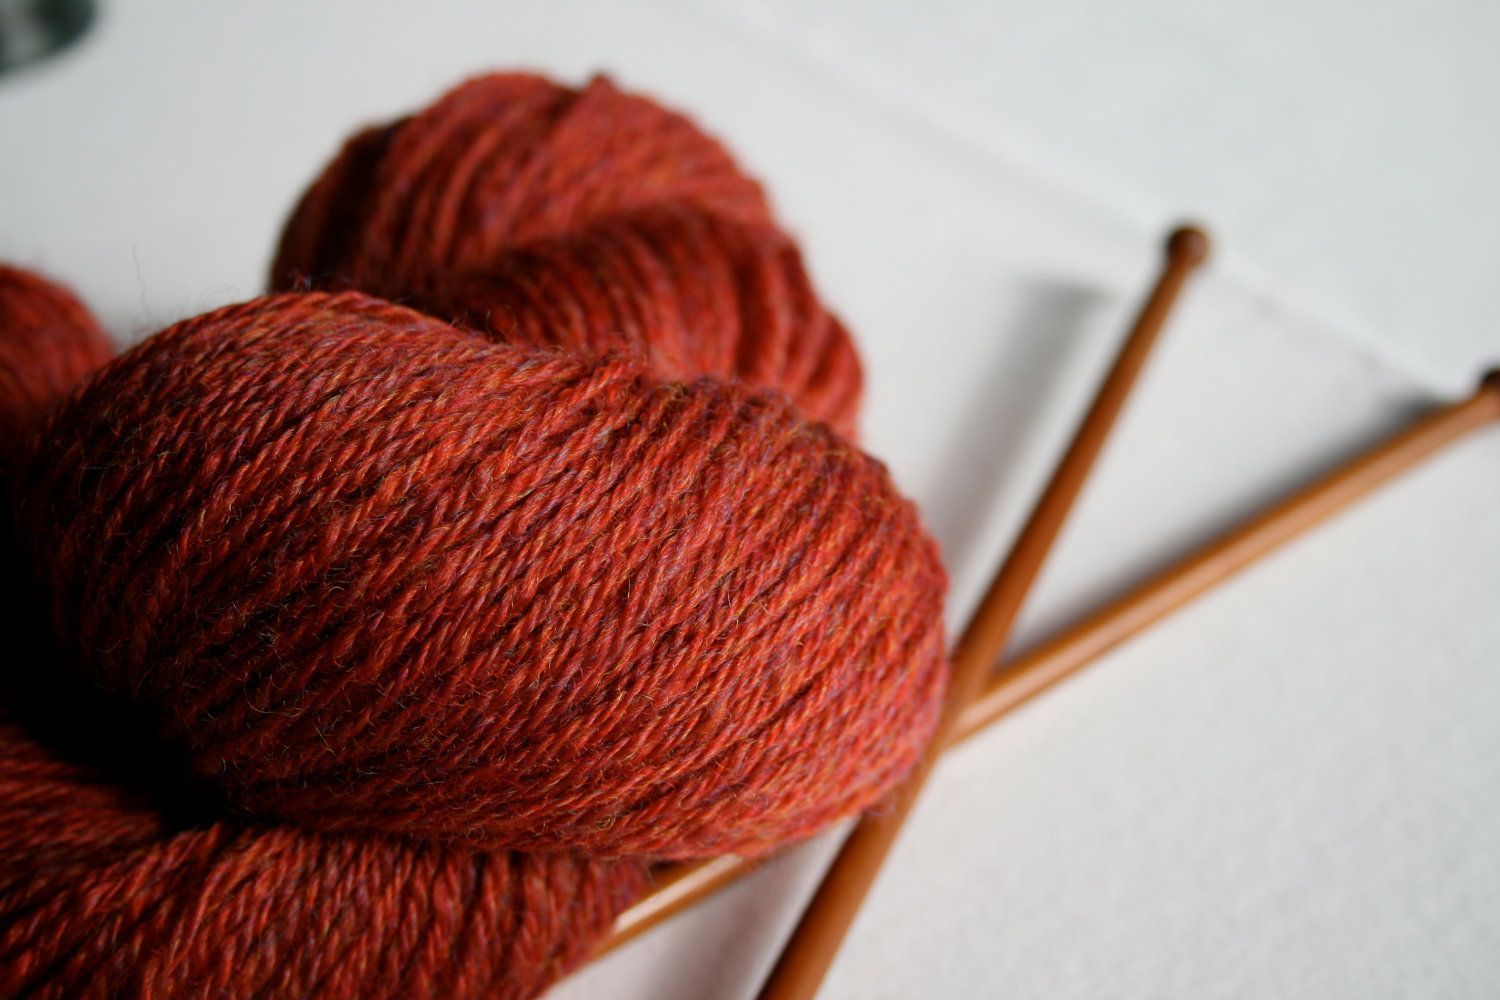 Pin by Cate Orchard on color Summer yarn, Wool yarn, Red